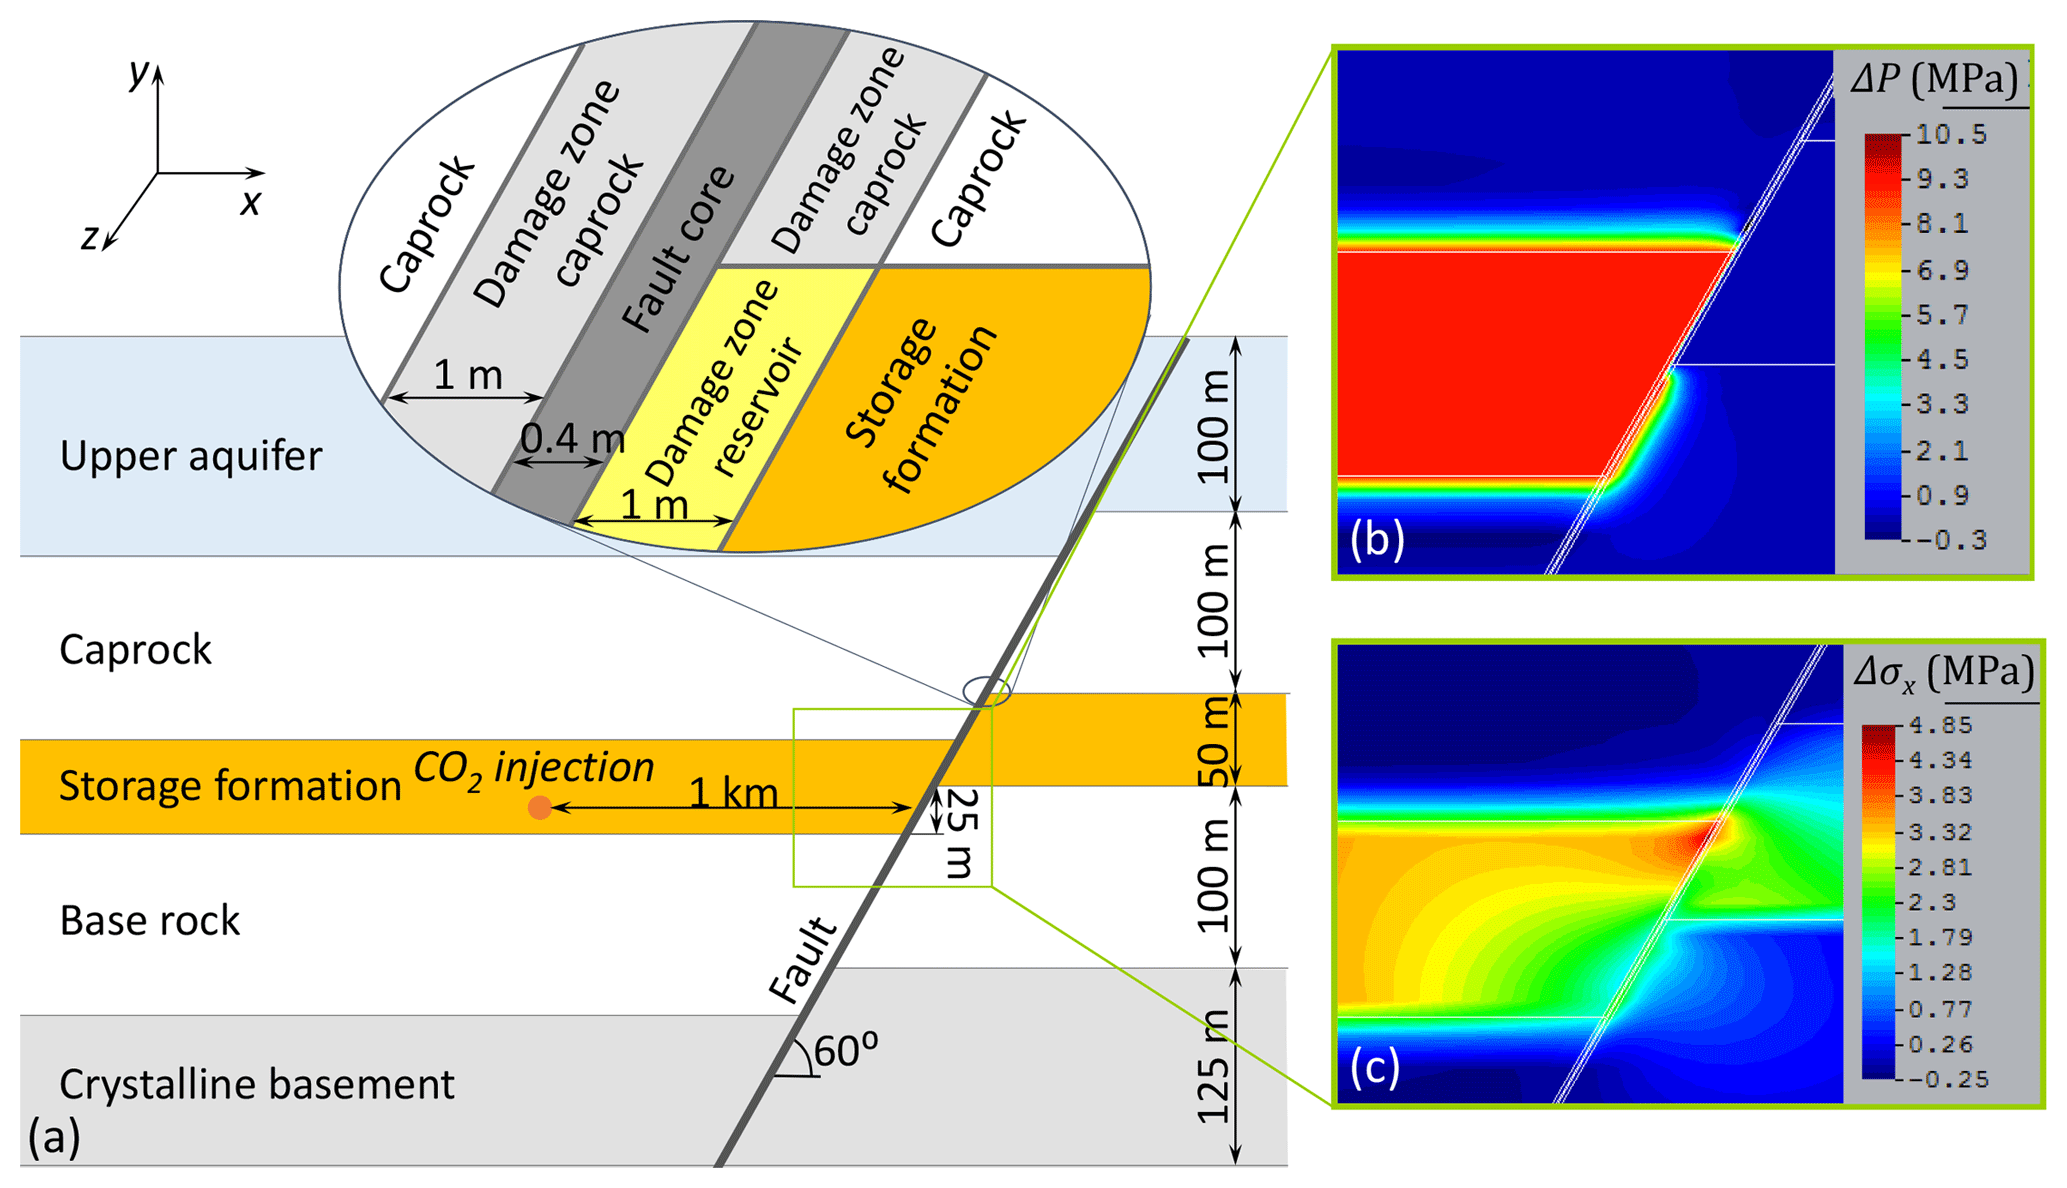 SE - Induced seismicity in geologic carbon storage